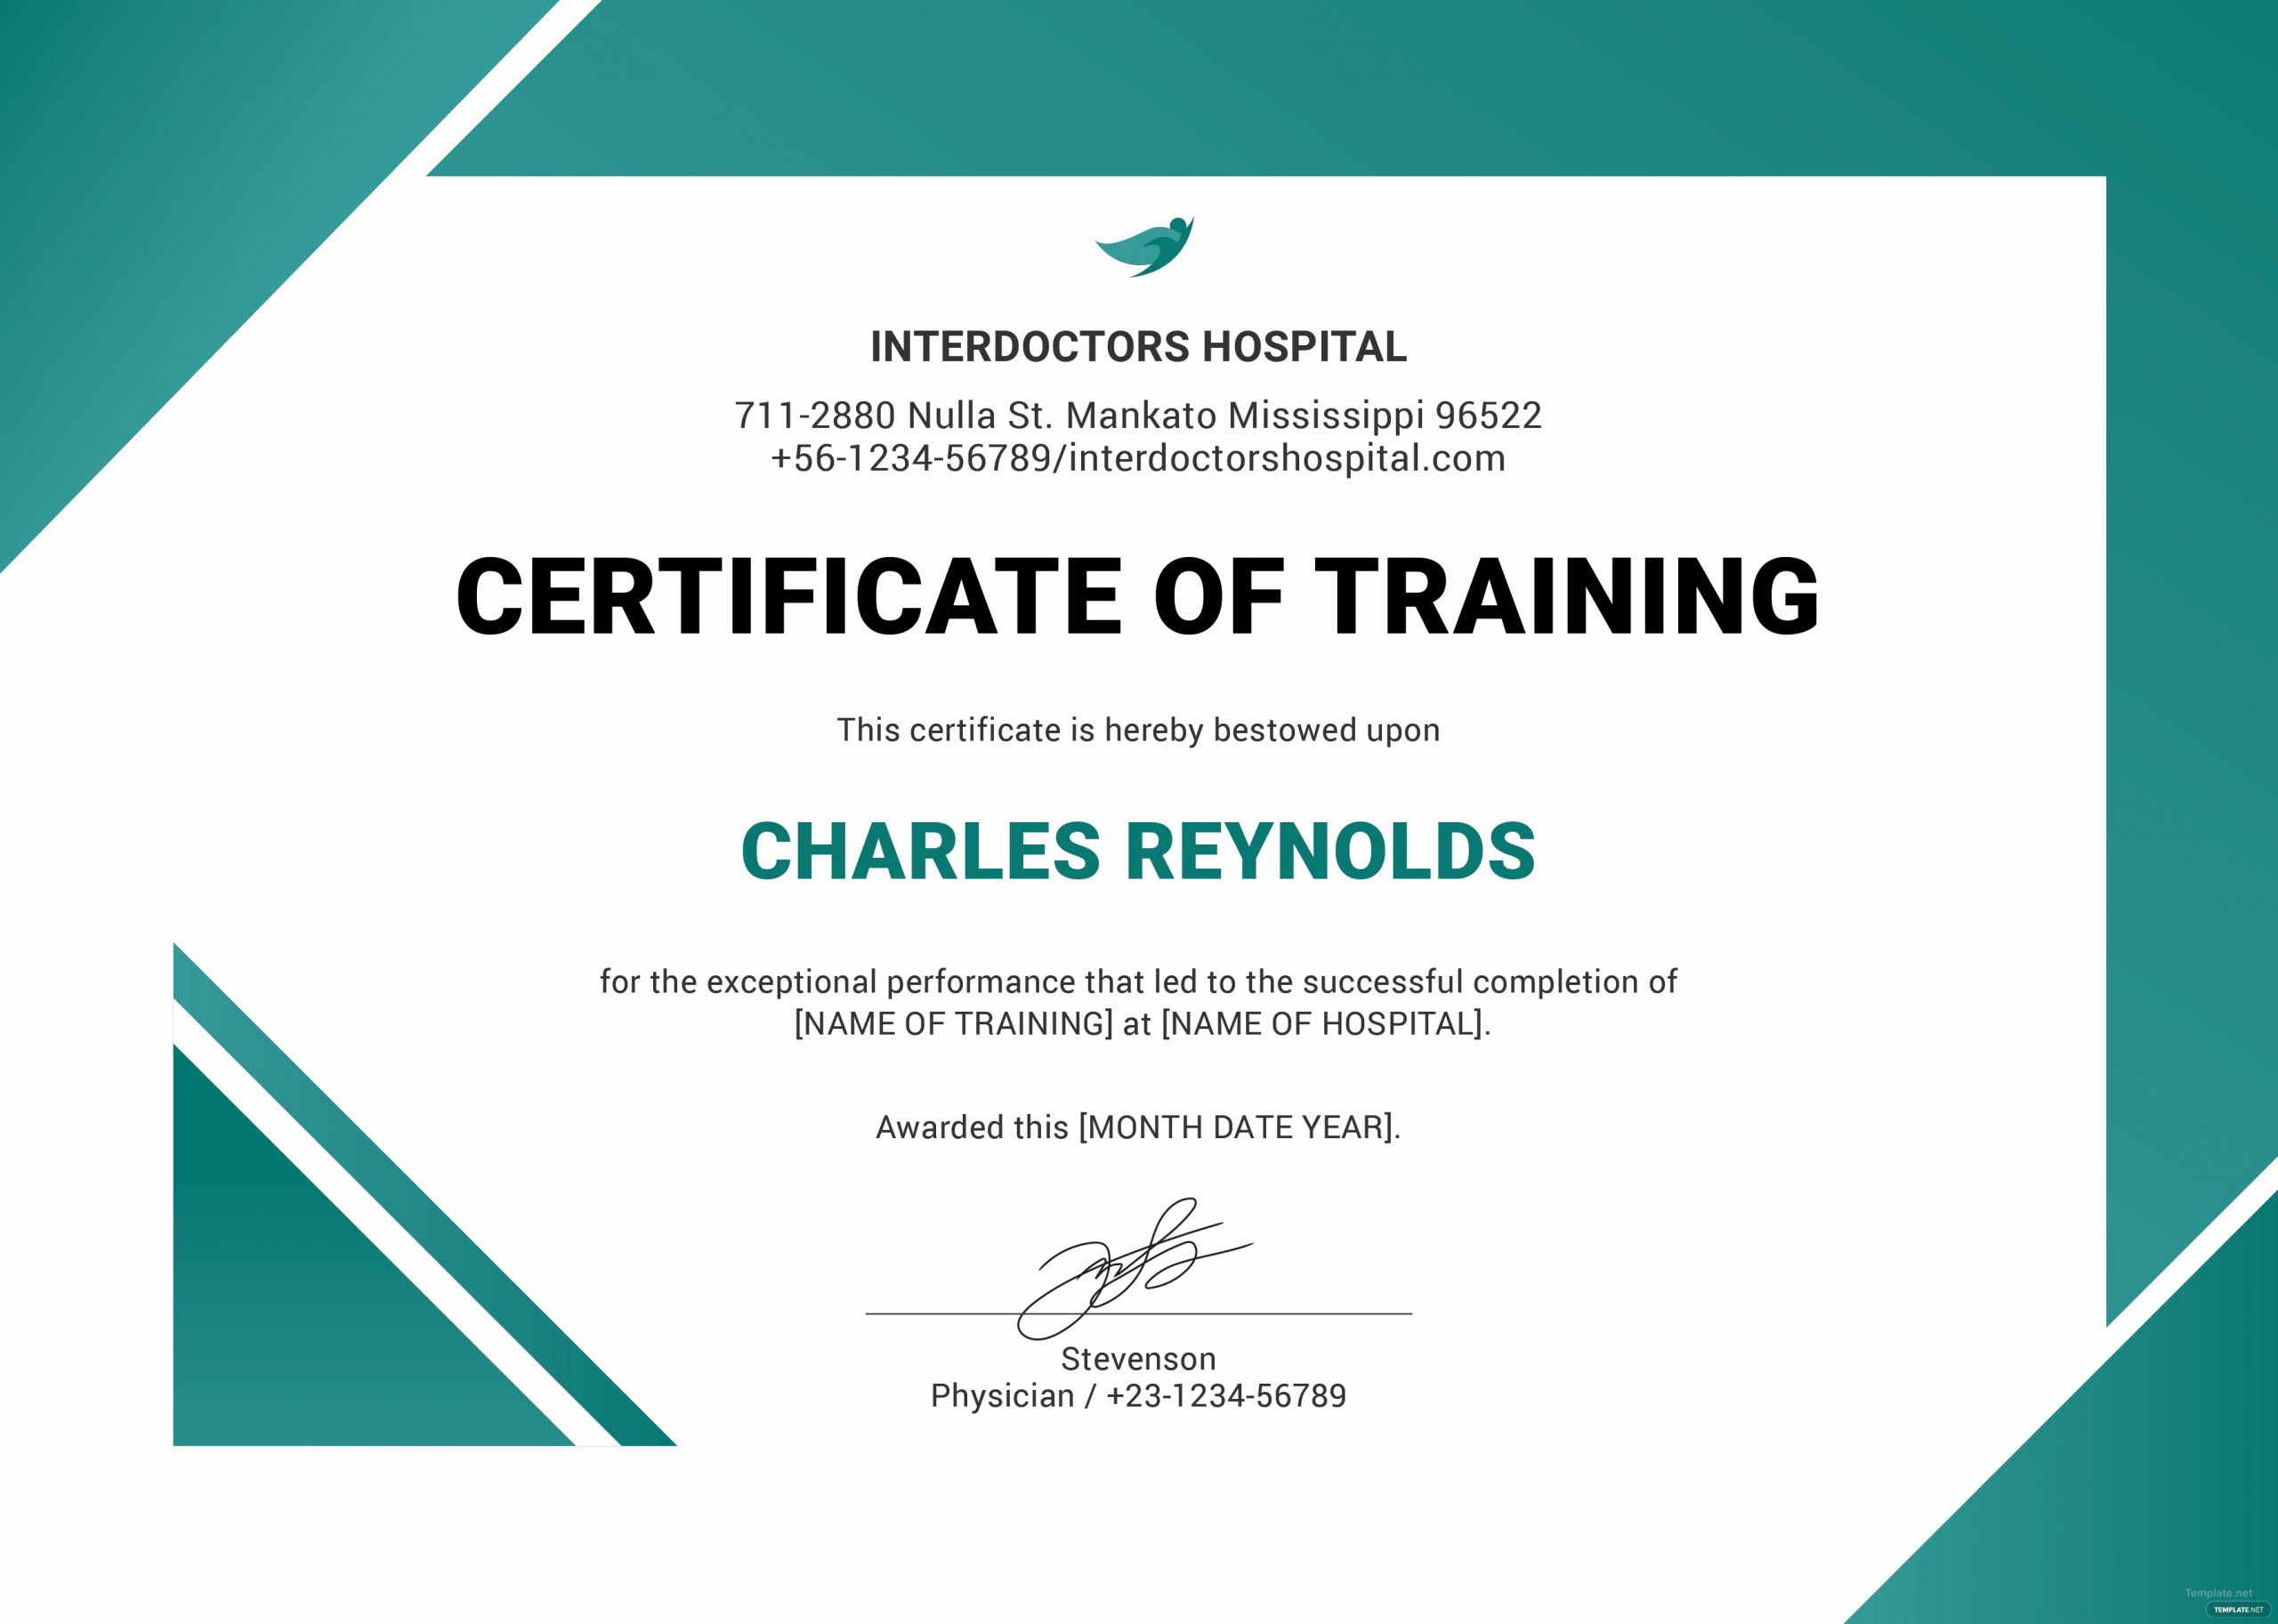 Dog Training Certificate Template Best Of Free Hospital Training Certificate Template In Microsoft